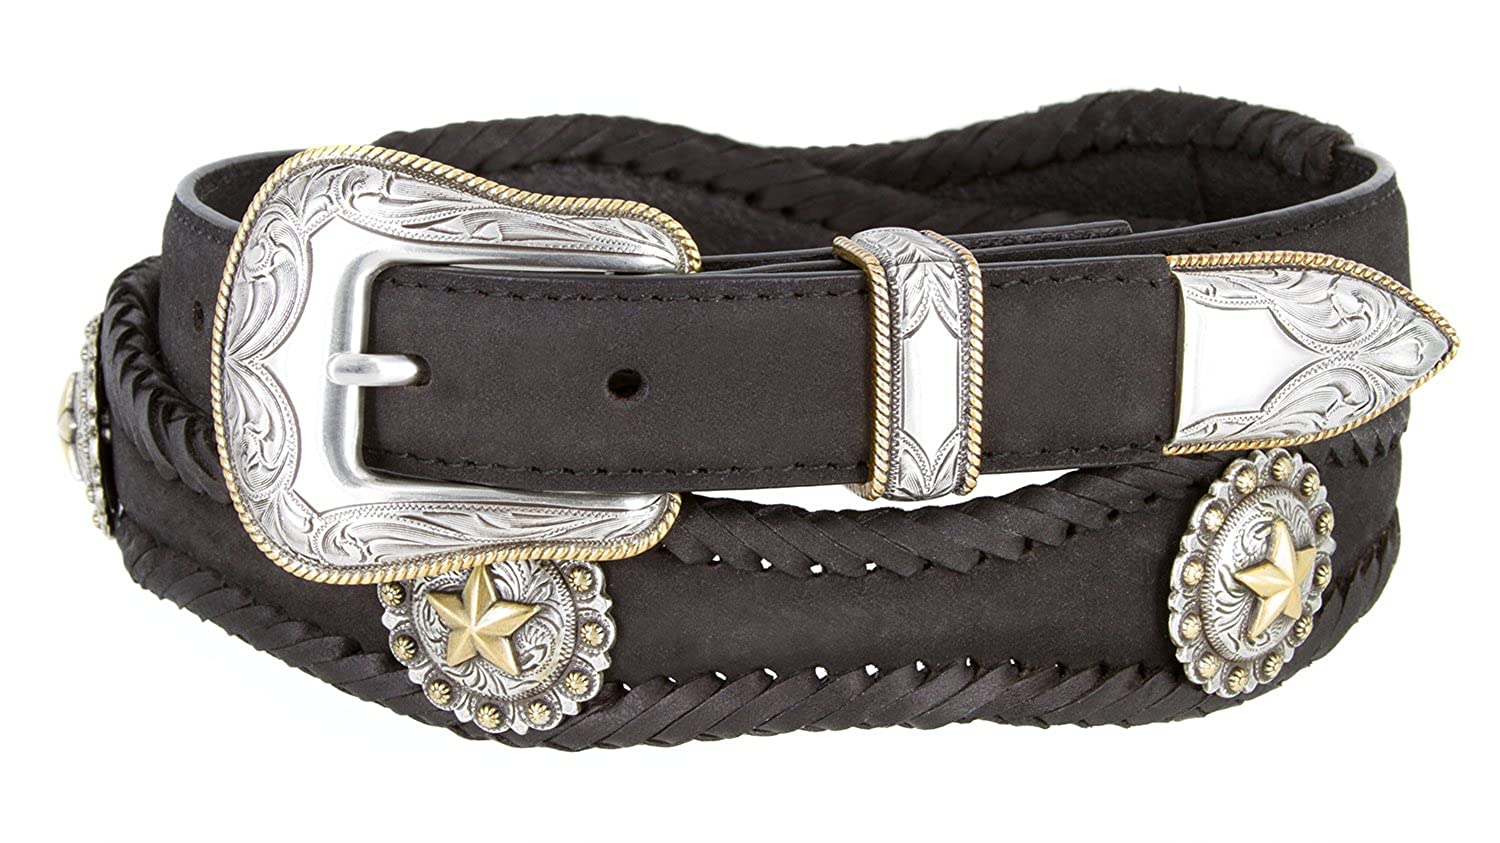 Golden Star Western Leather Conchos Belt 1 1//2 Wide